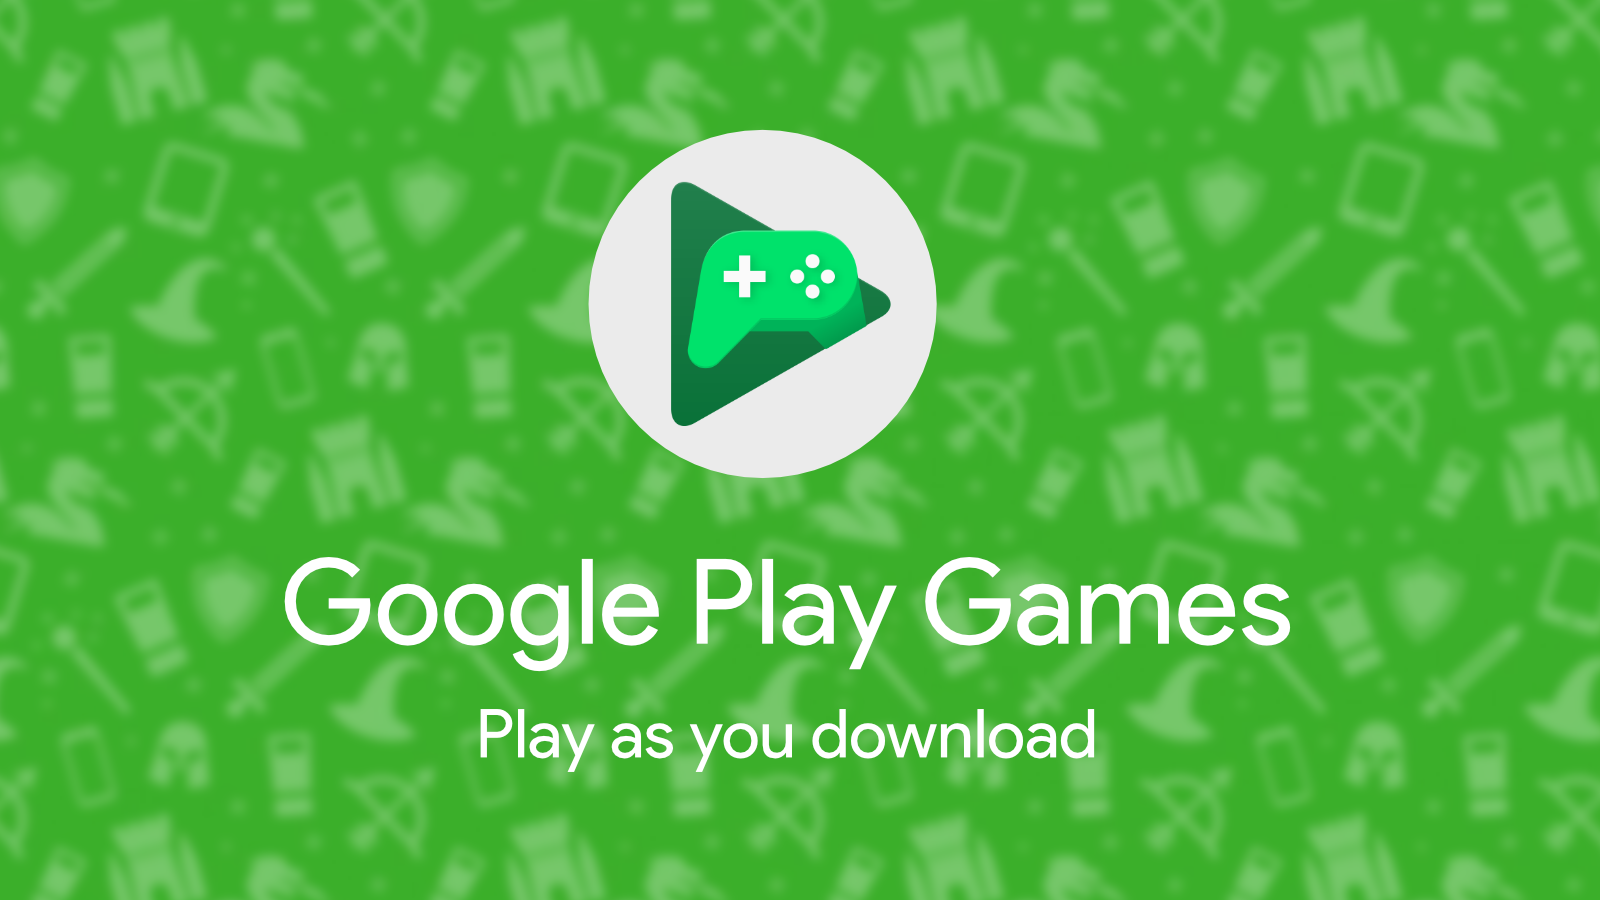 Google Play Games 'Play as you download', new game dashboard, more announced